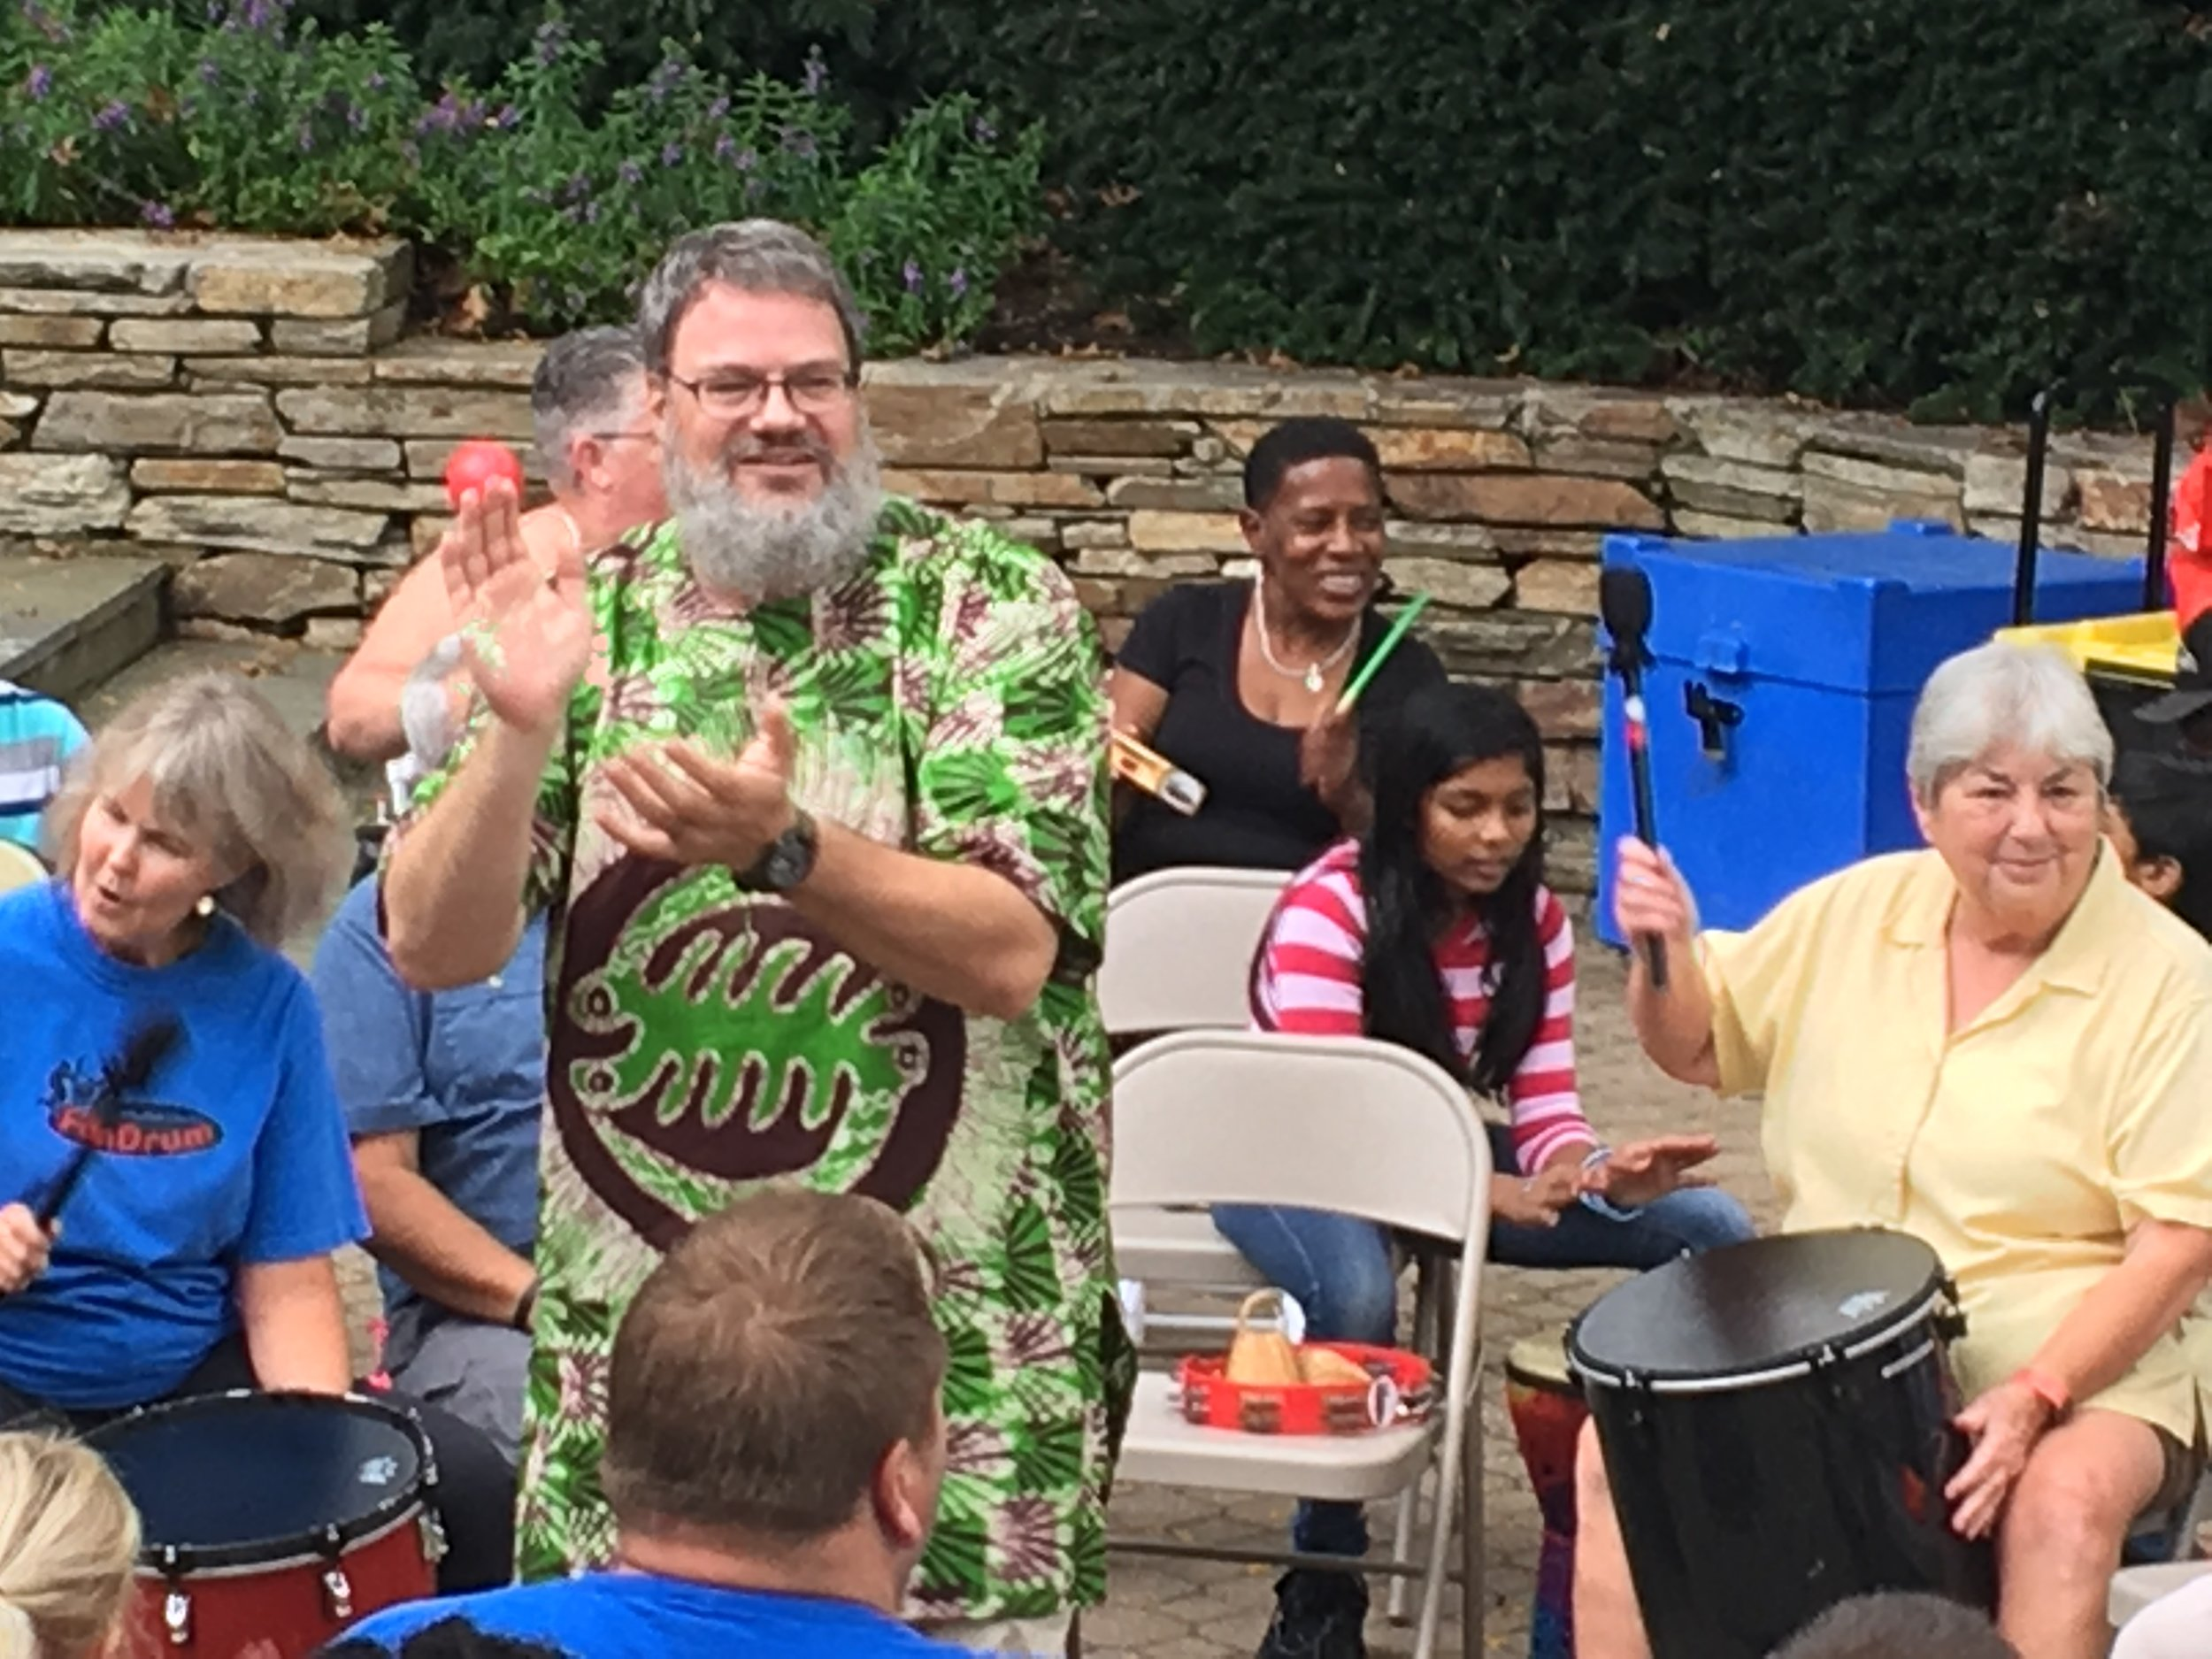 Have led an annual community drumcircle every year since 2003 at the Oakland Mills  International Festival.  Always fun when community shows up.